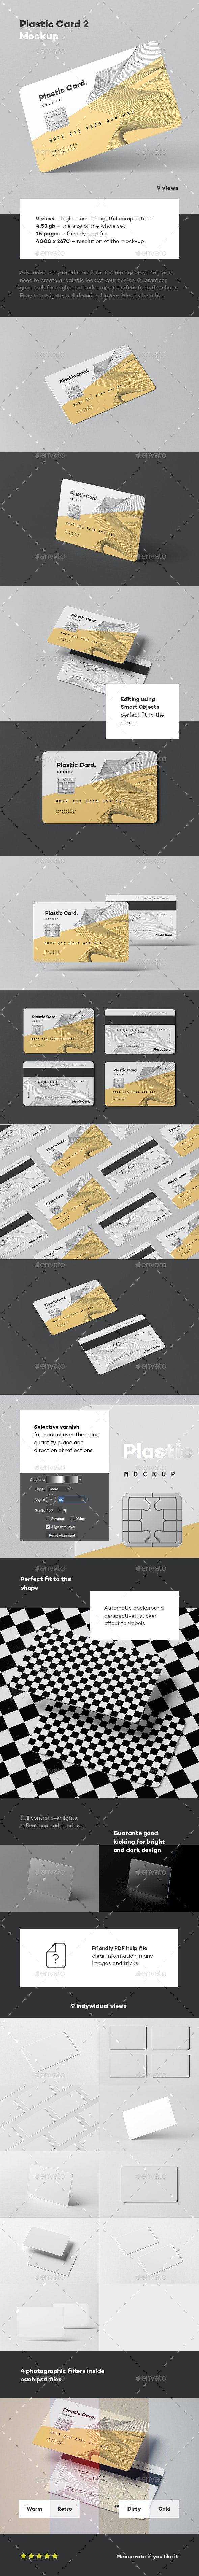 Plastic Card Mock-up 2 - Business Cards Print